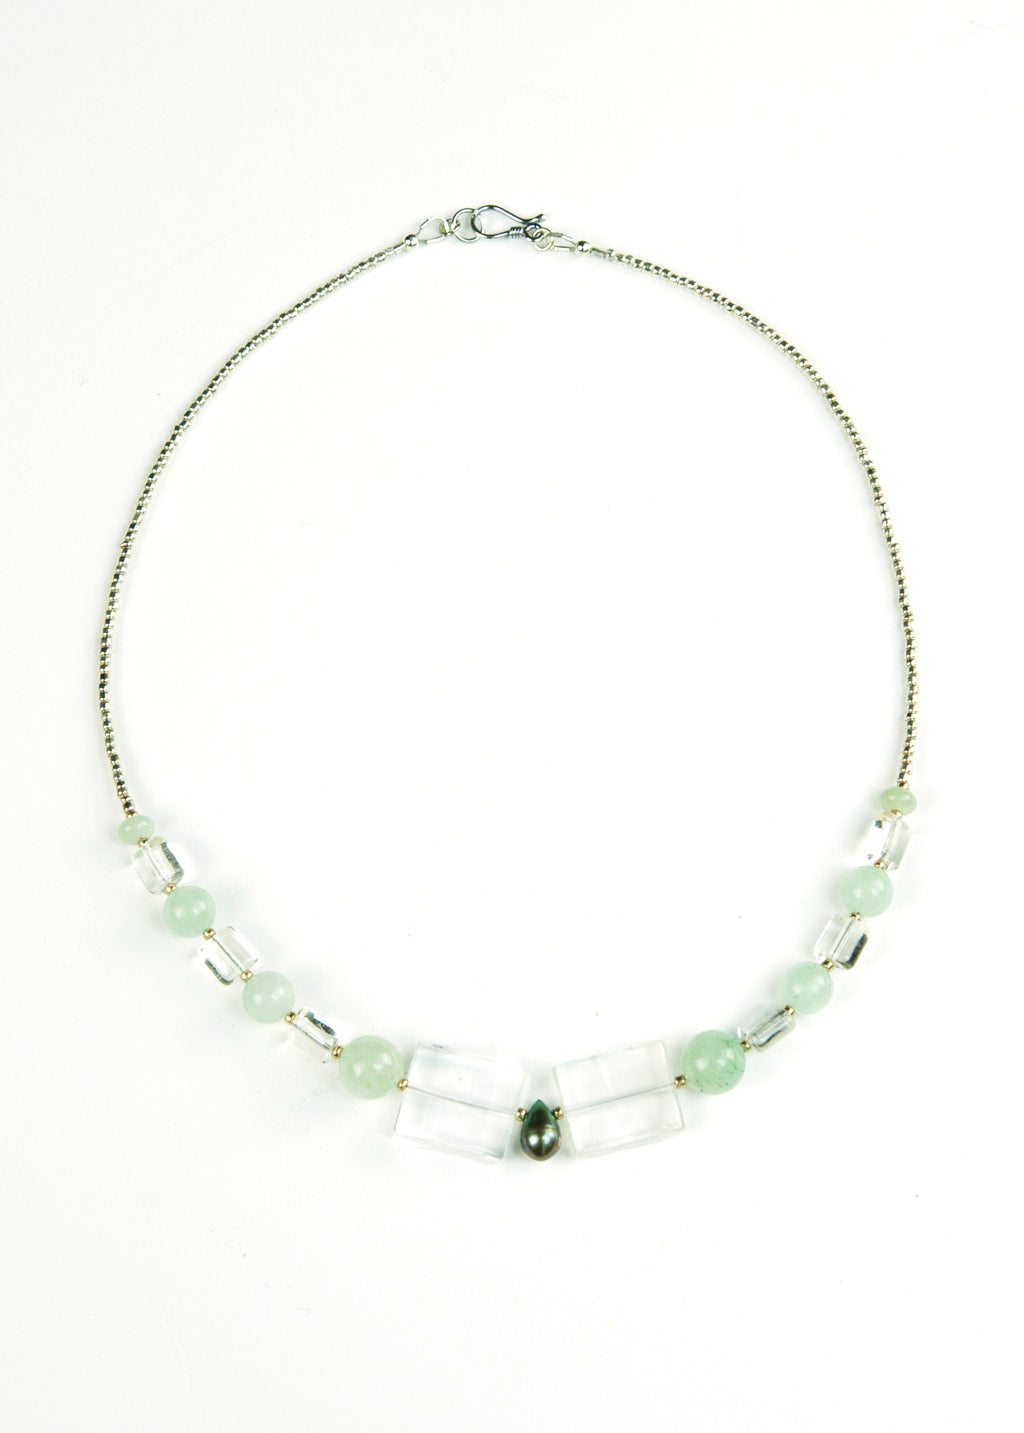 Green Glass and Square Centerpiece Envy Necklace